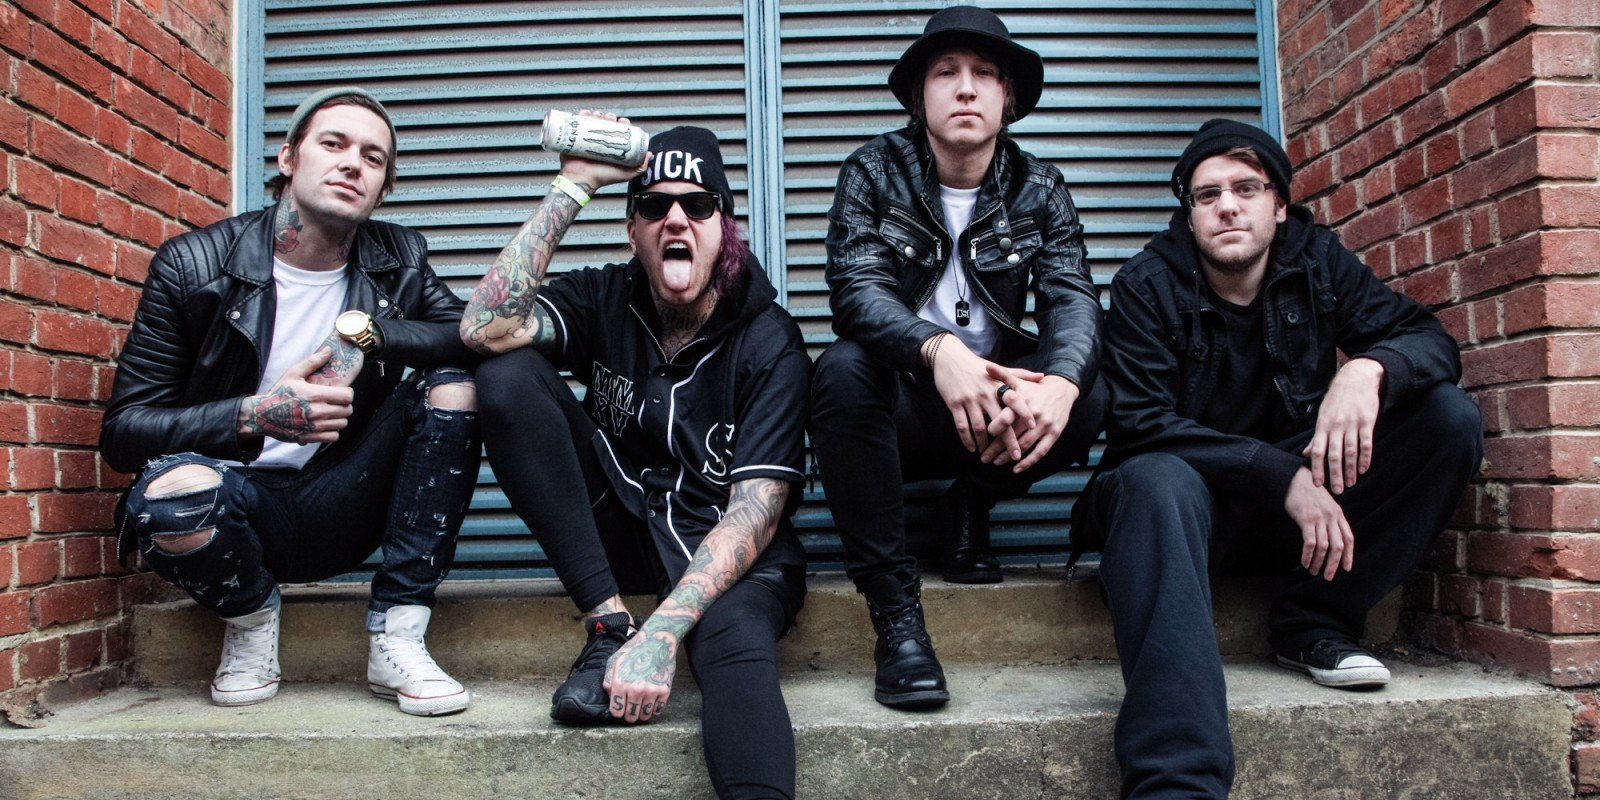 Atila at the 2015 Vans Warped Tour in the United Kingdom